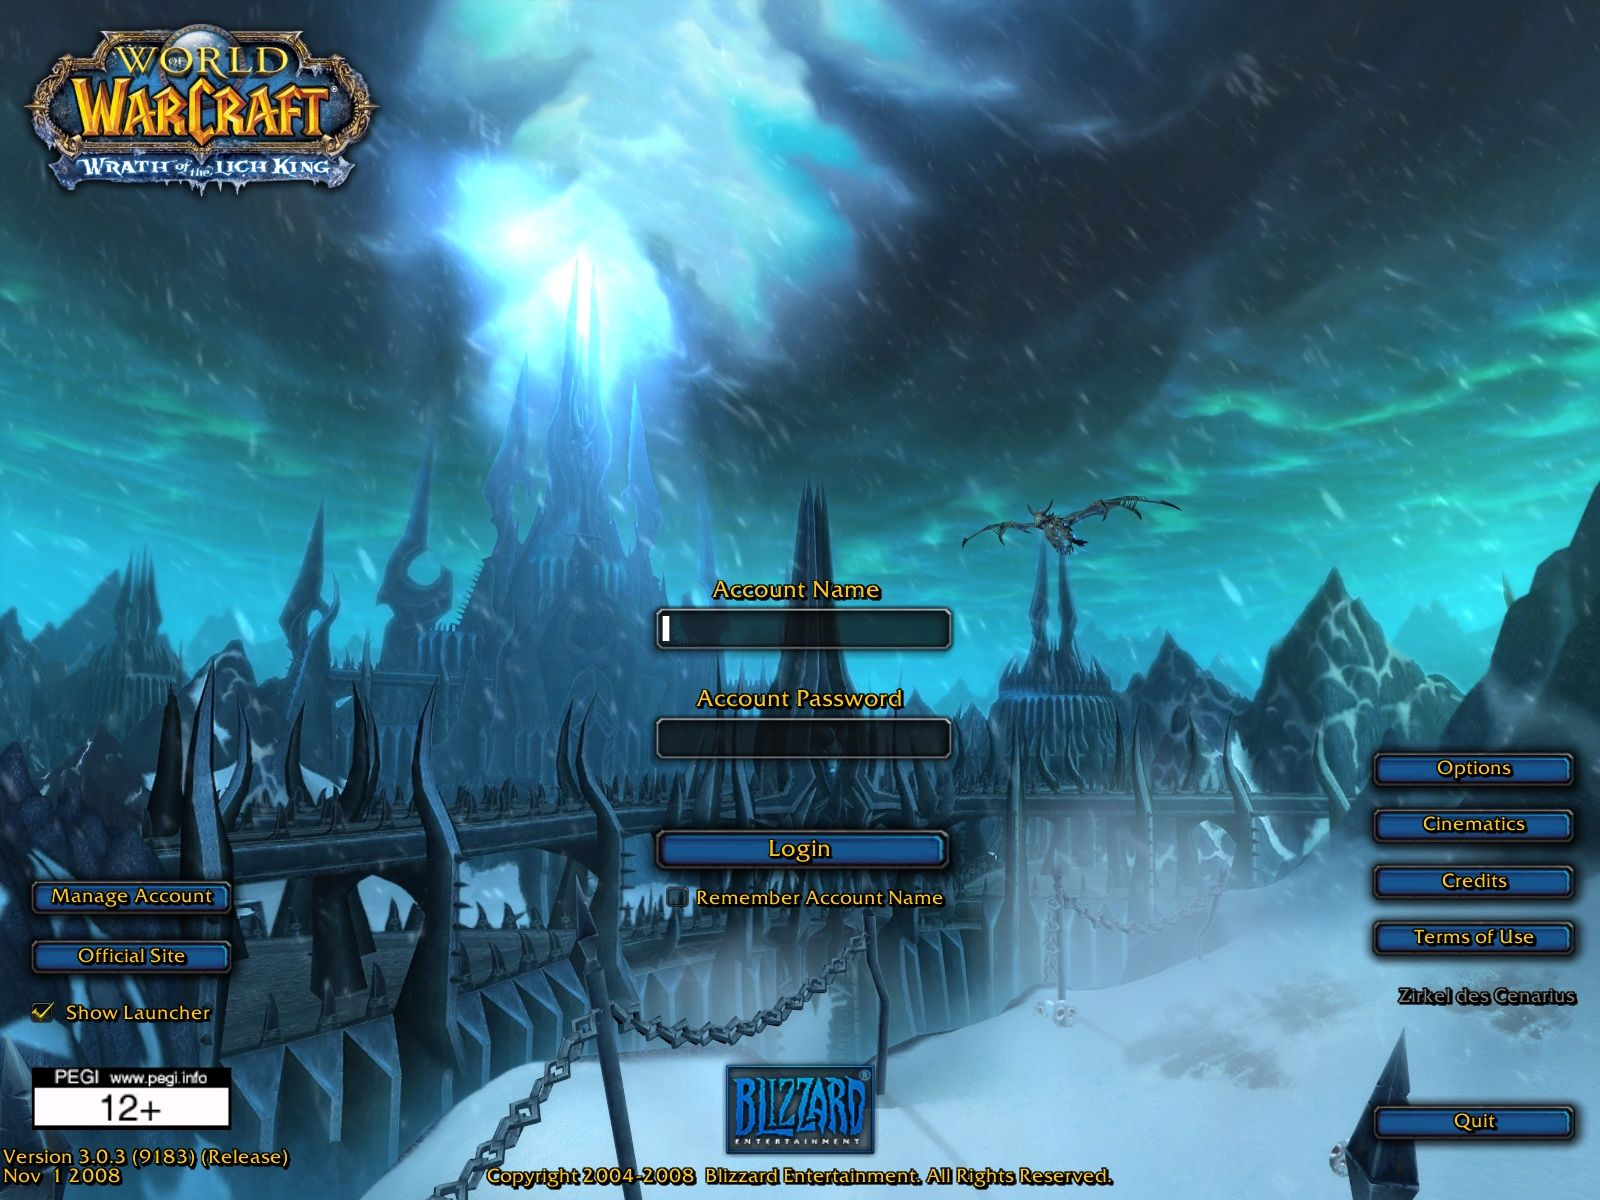 world of warcraft wrath of the lich king screenshots for windows